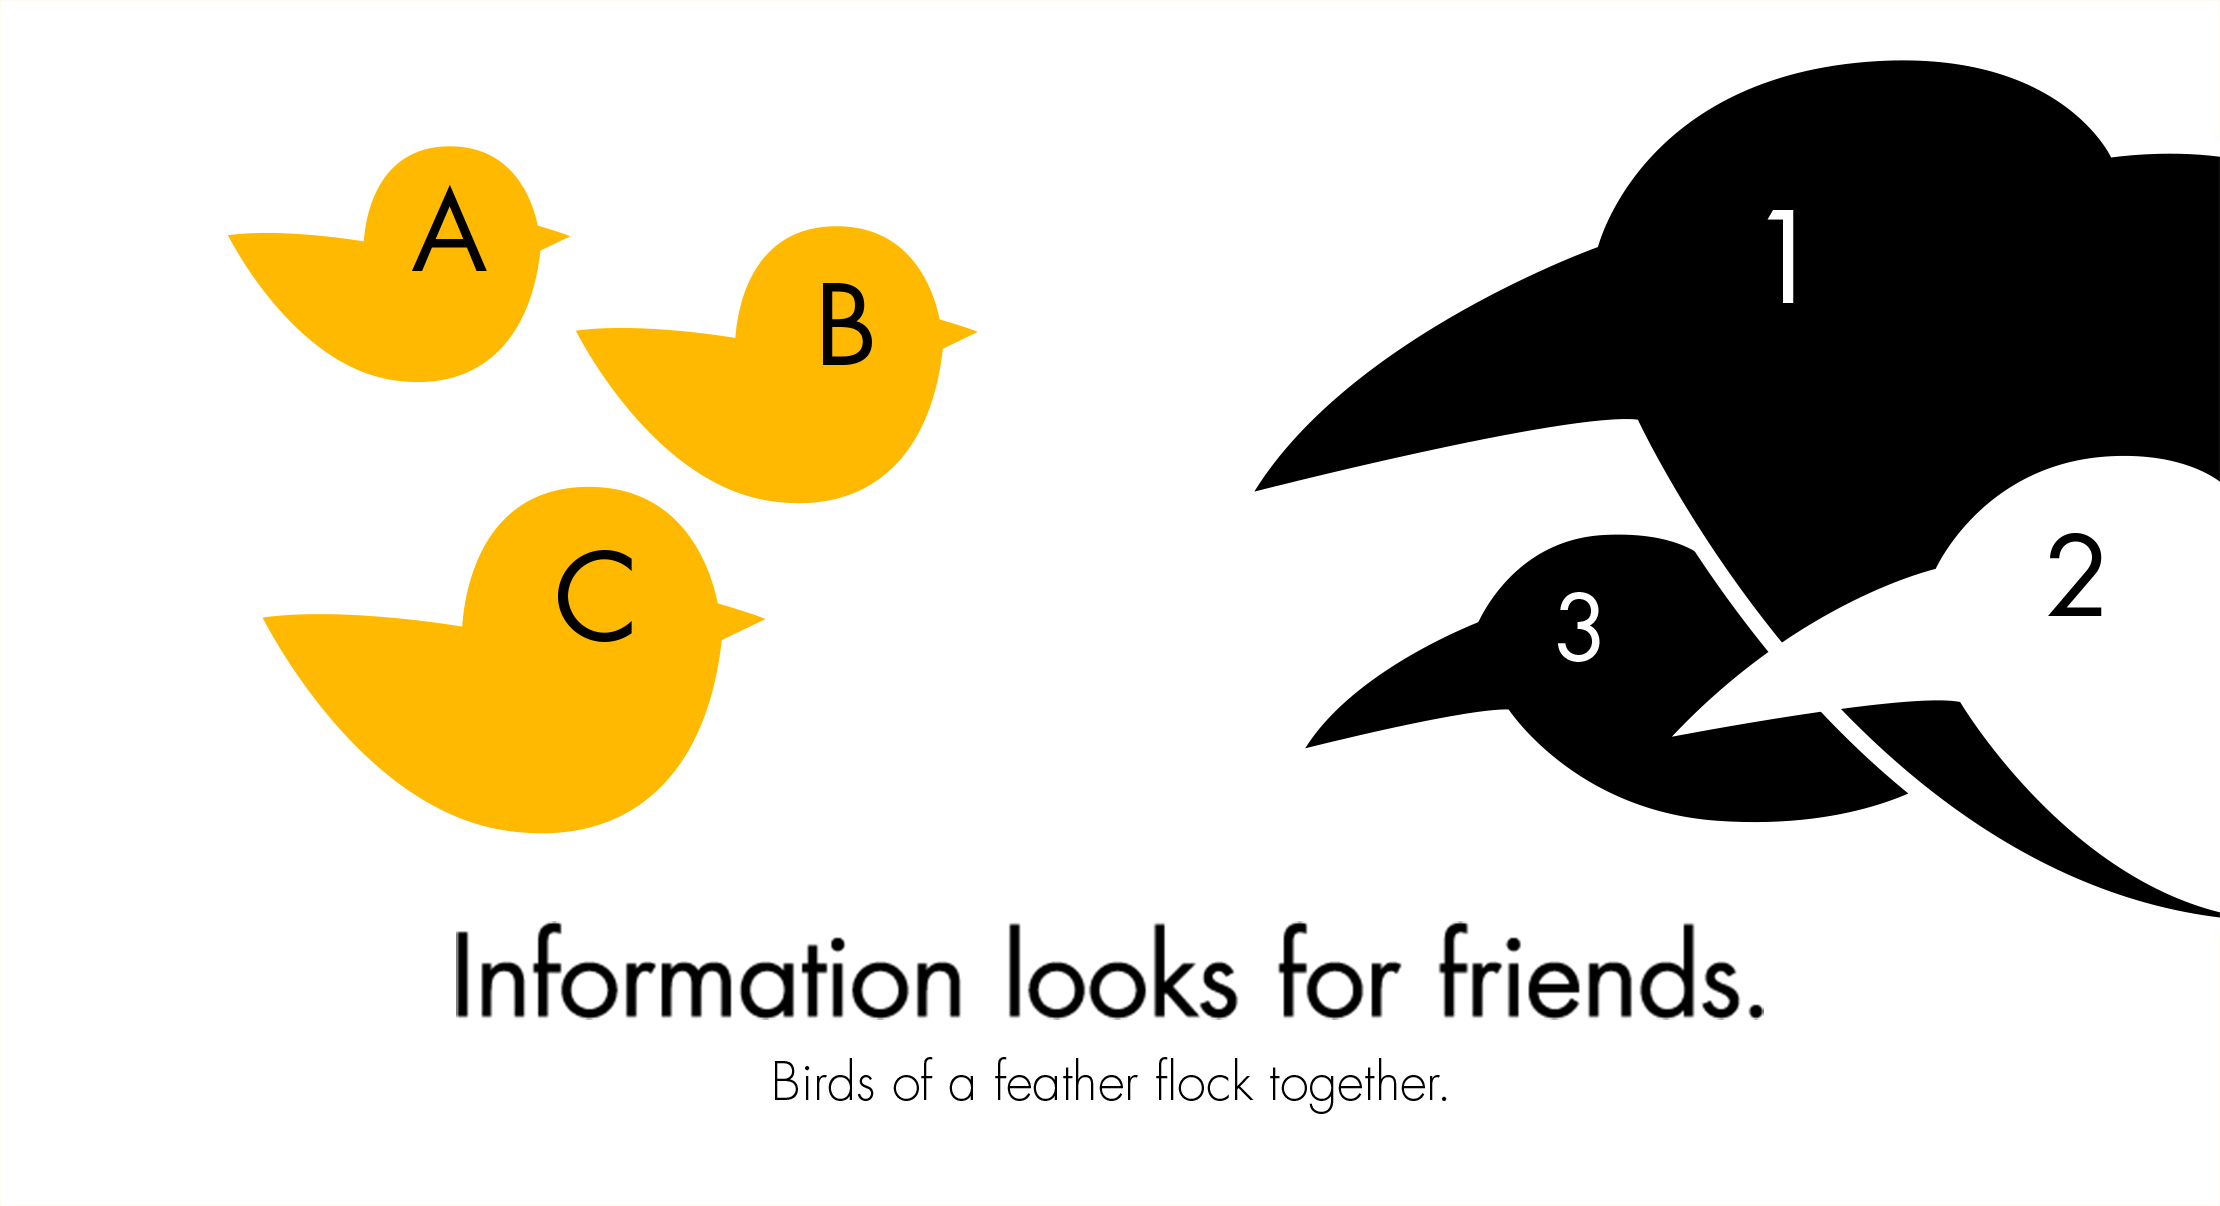 i_see_3_information_looks_for_friends.png